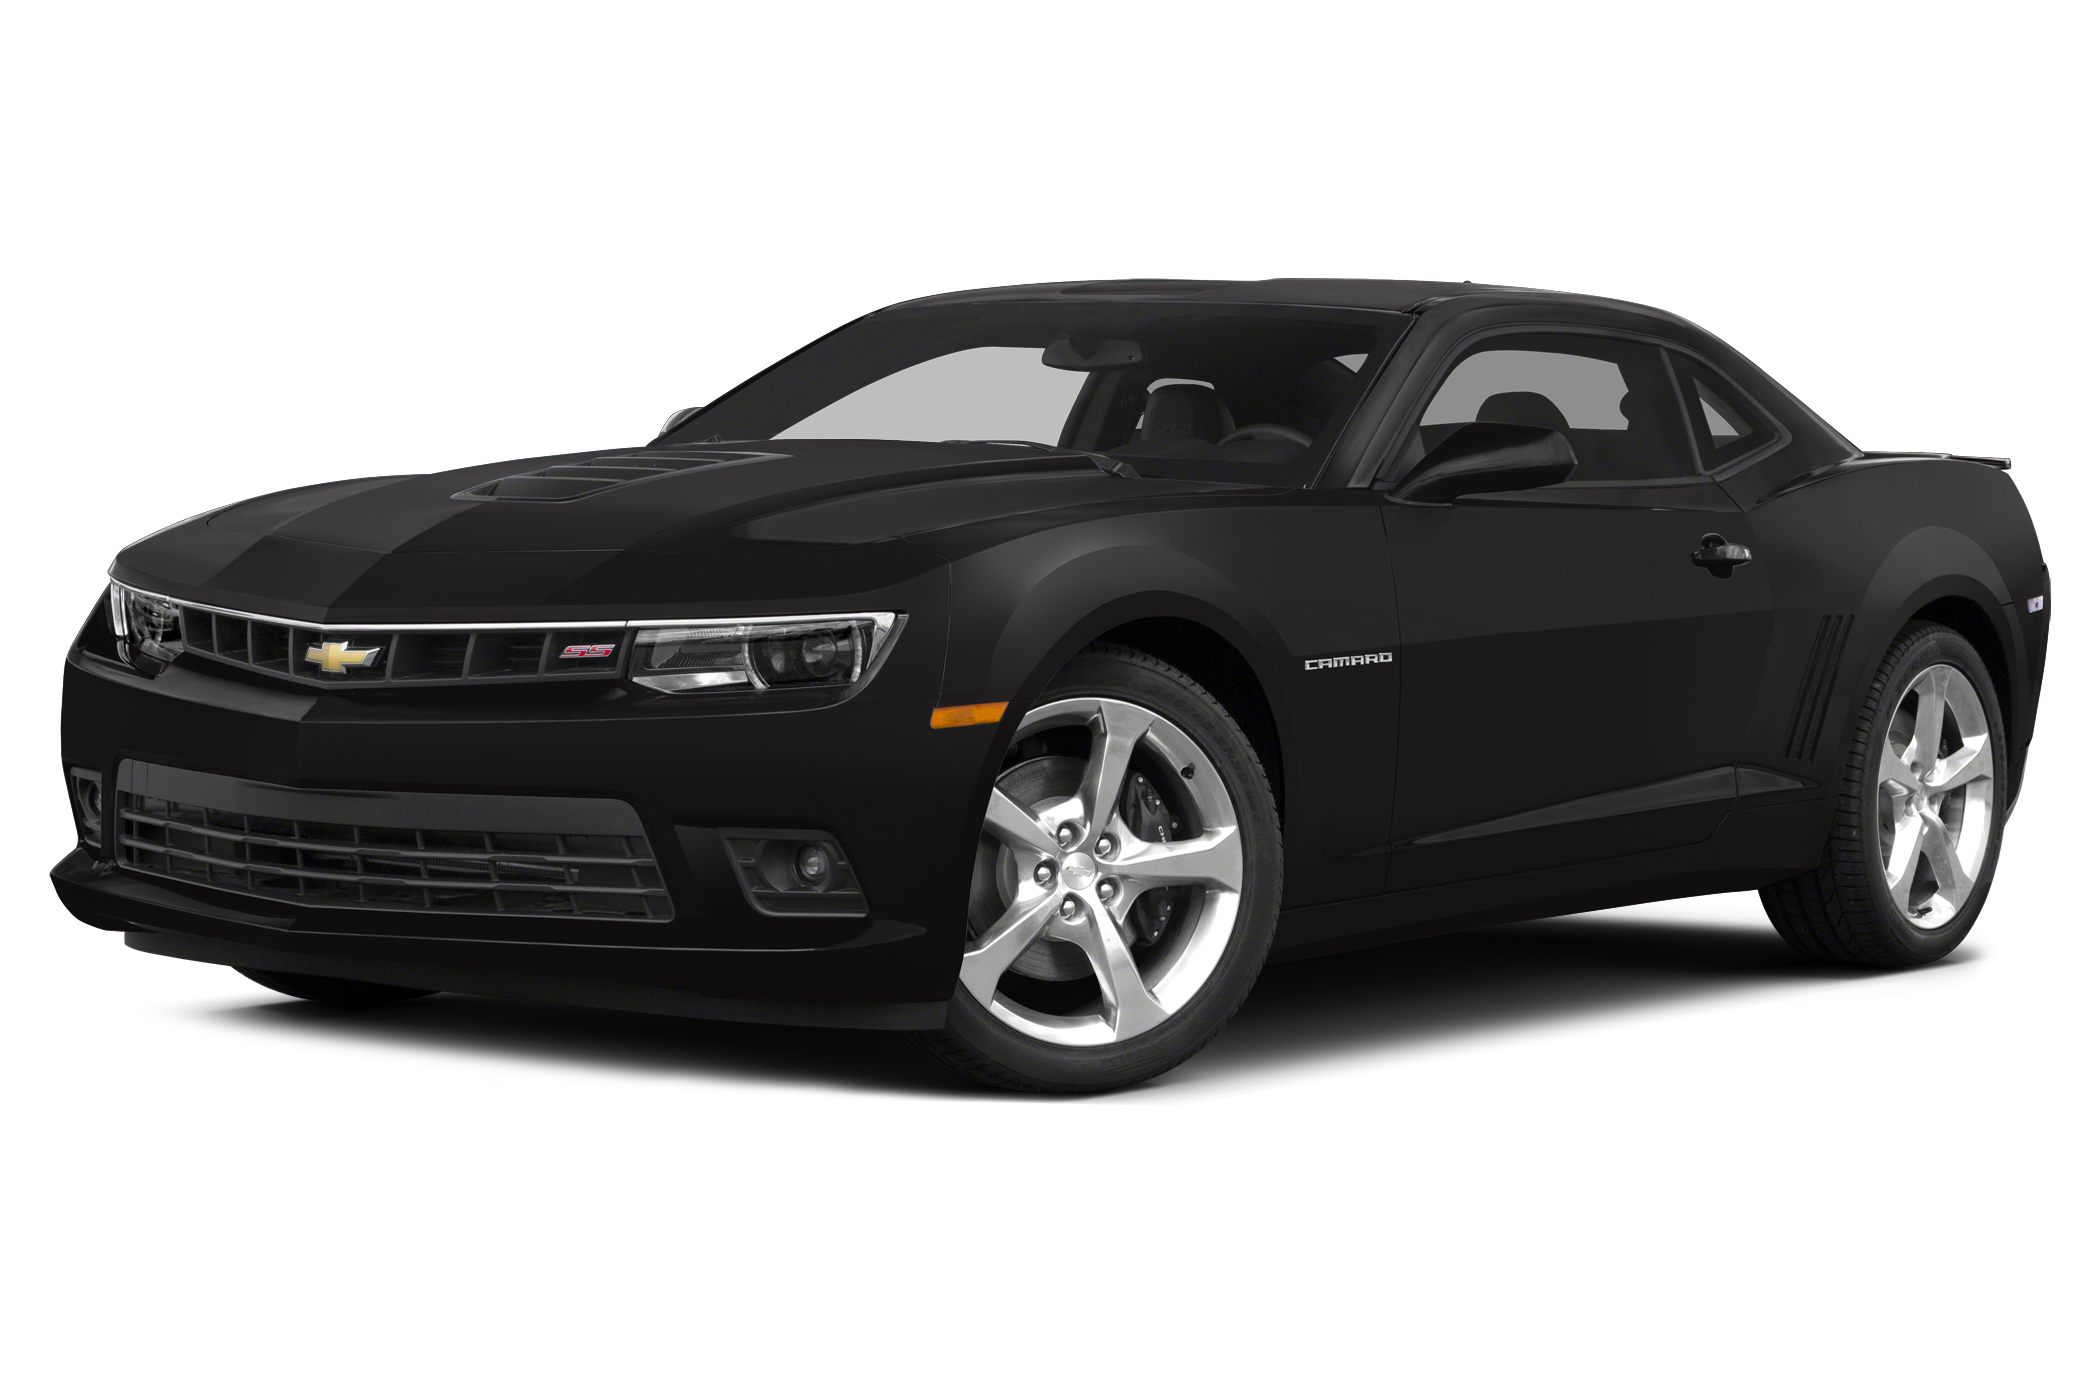 2016 Chevrolet Camaro Coupe Configurations >> 2015 Chevrolet Camaro Ss W 2ss 2dr Coupe Specs And Prices